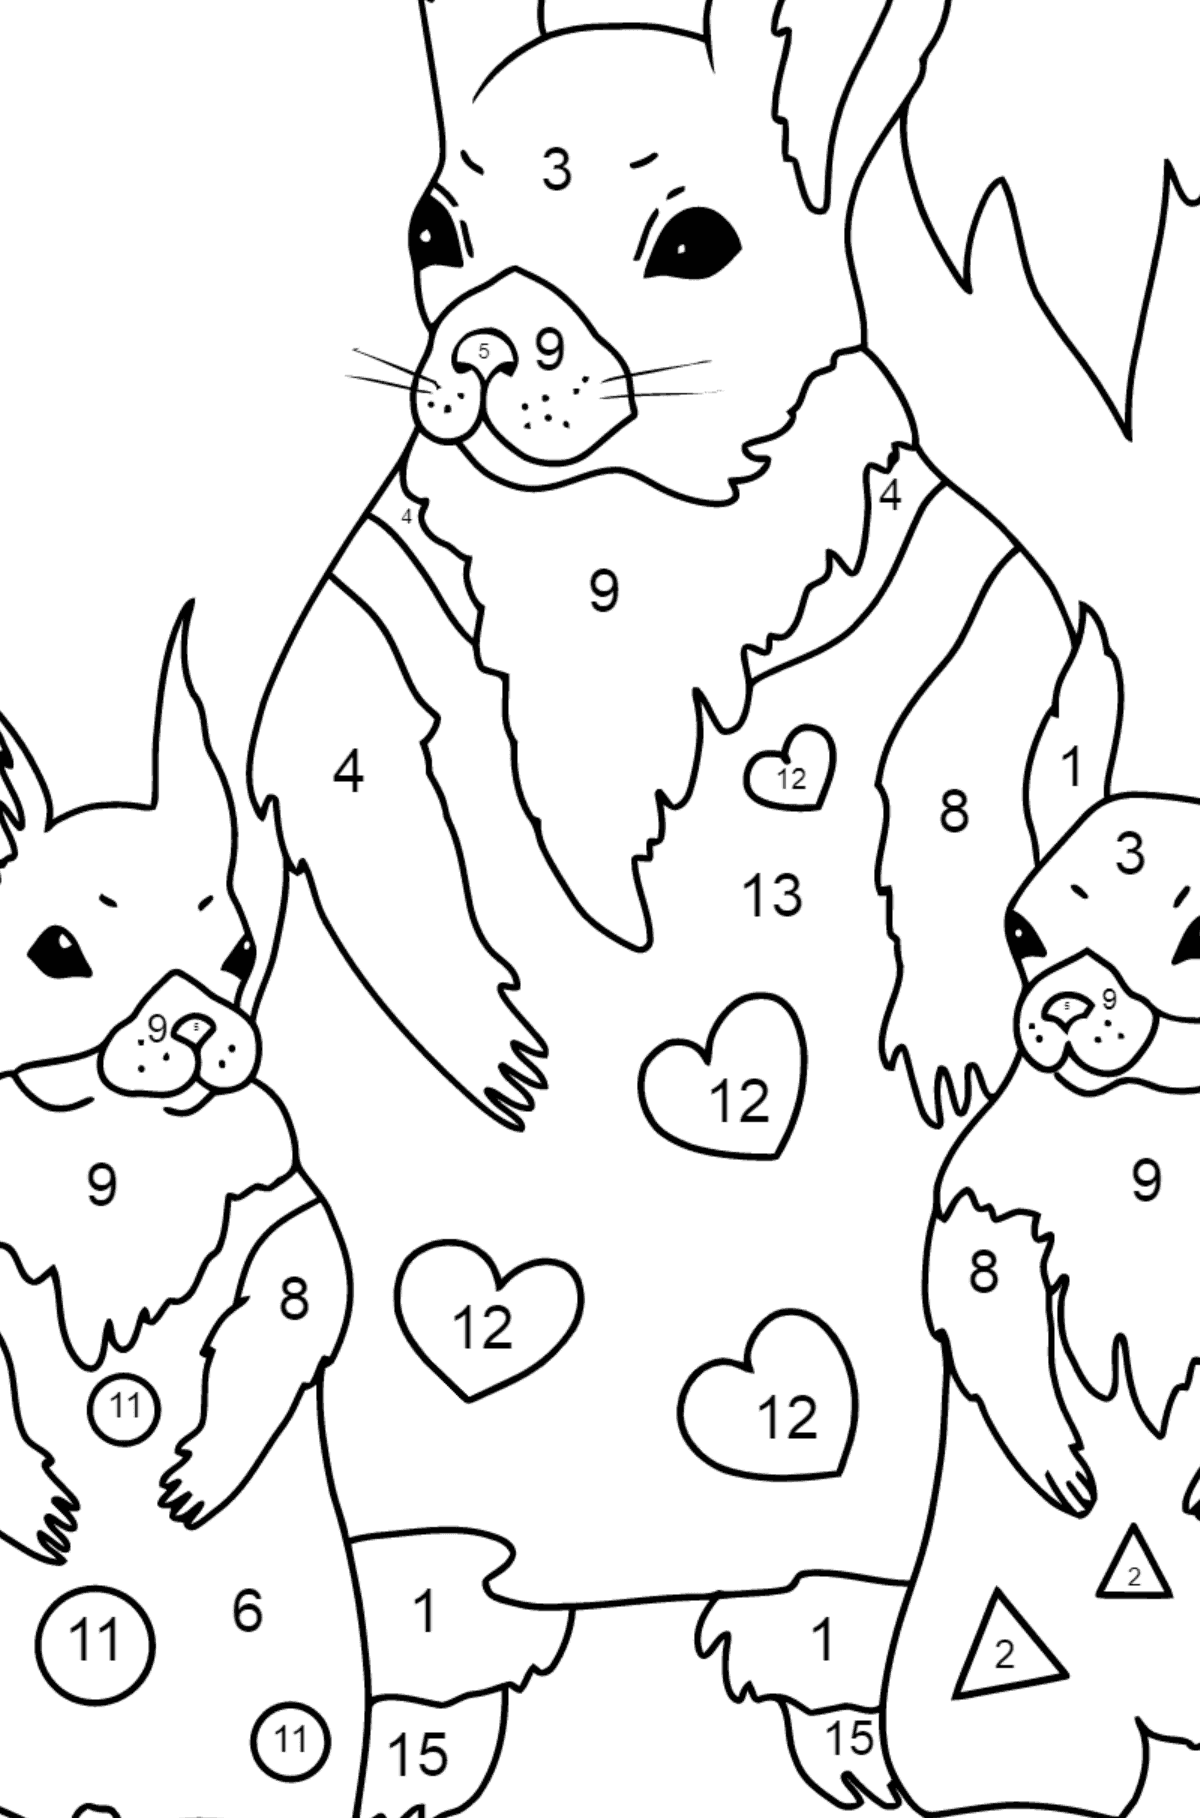 Spring Coloring Page - Squirrels have Dressed Up - Coloring by Numbers for Kids